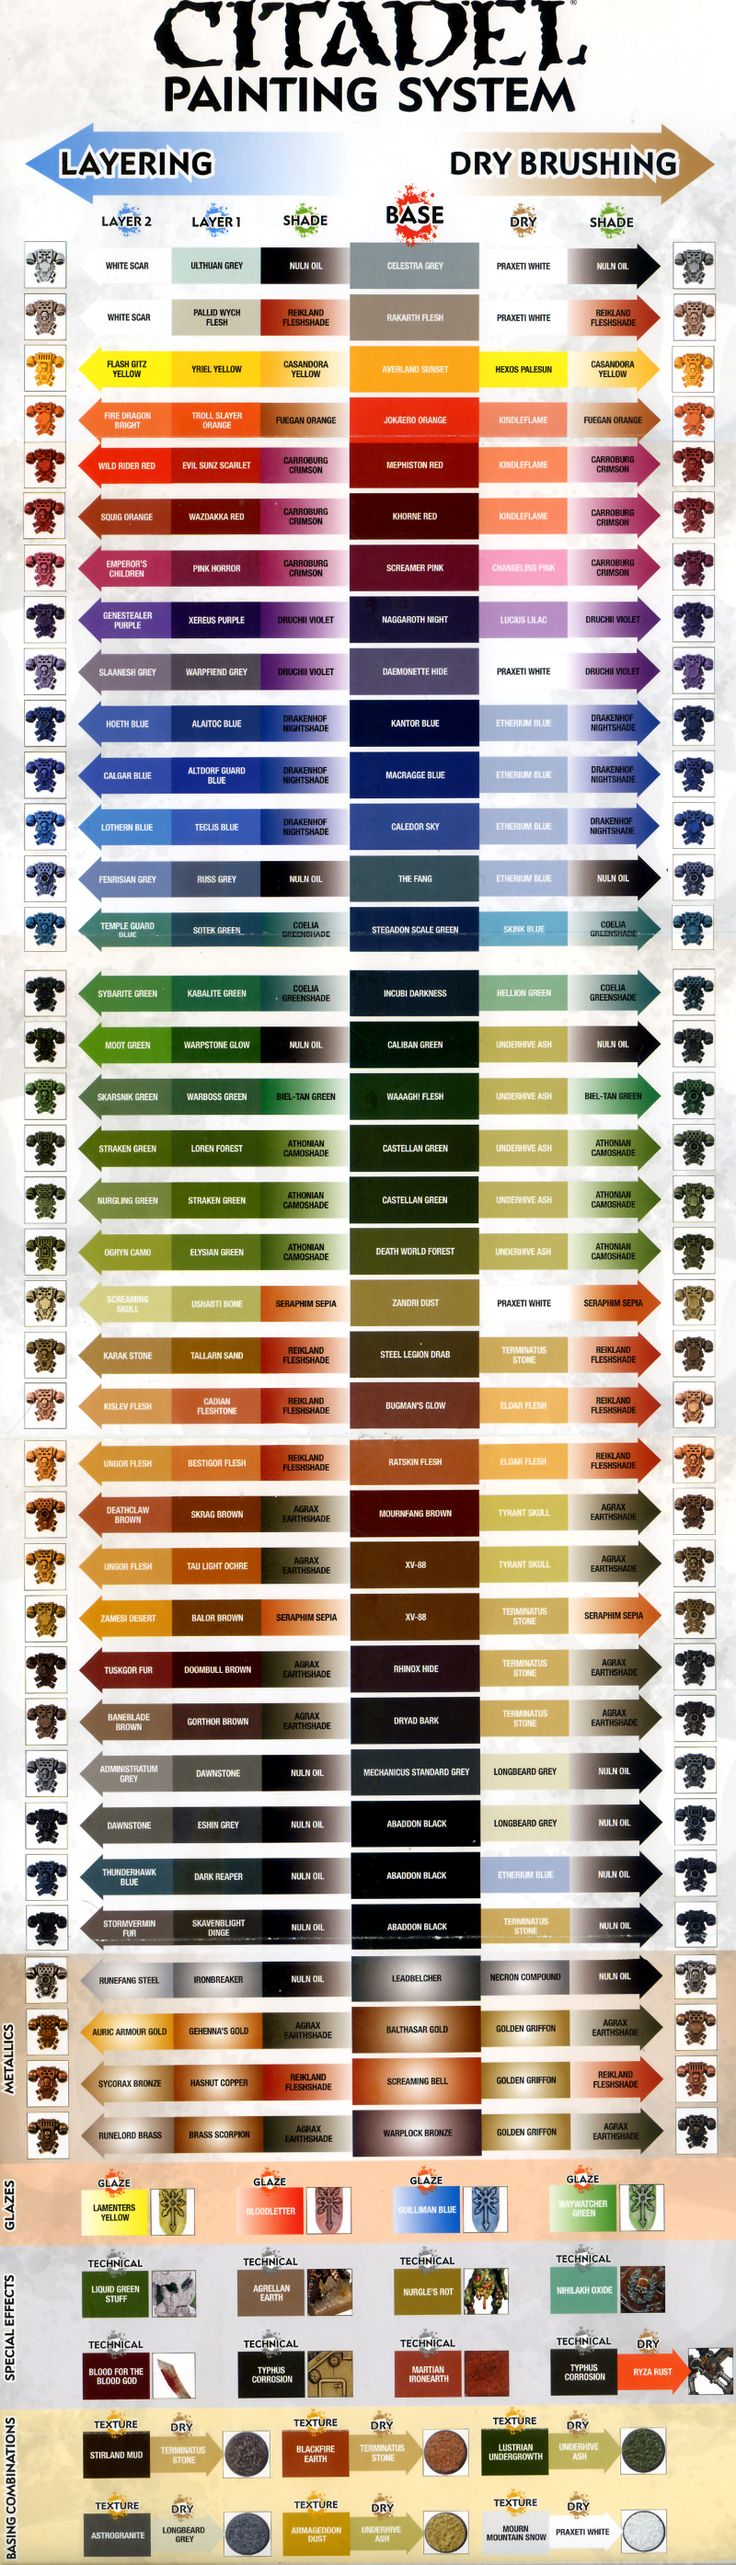 15 best color reference images on pinterest painting tutorials for us this ought to give my wife some color options nice chart of what goes together for shadescolors geenschuldenfo Choice Image